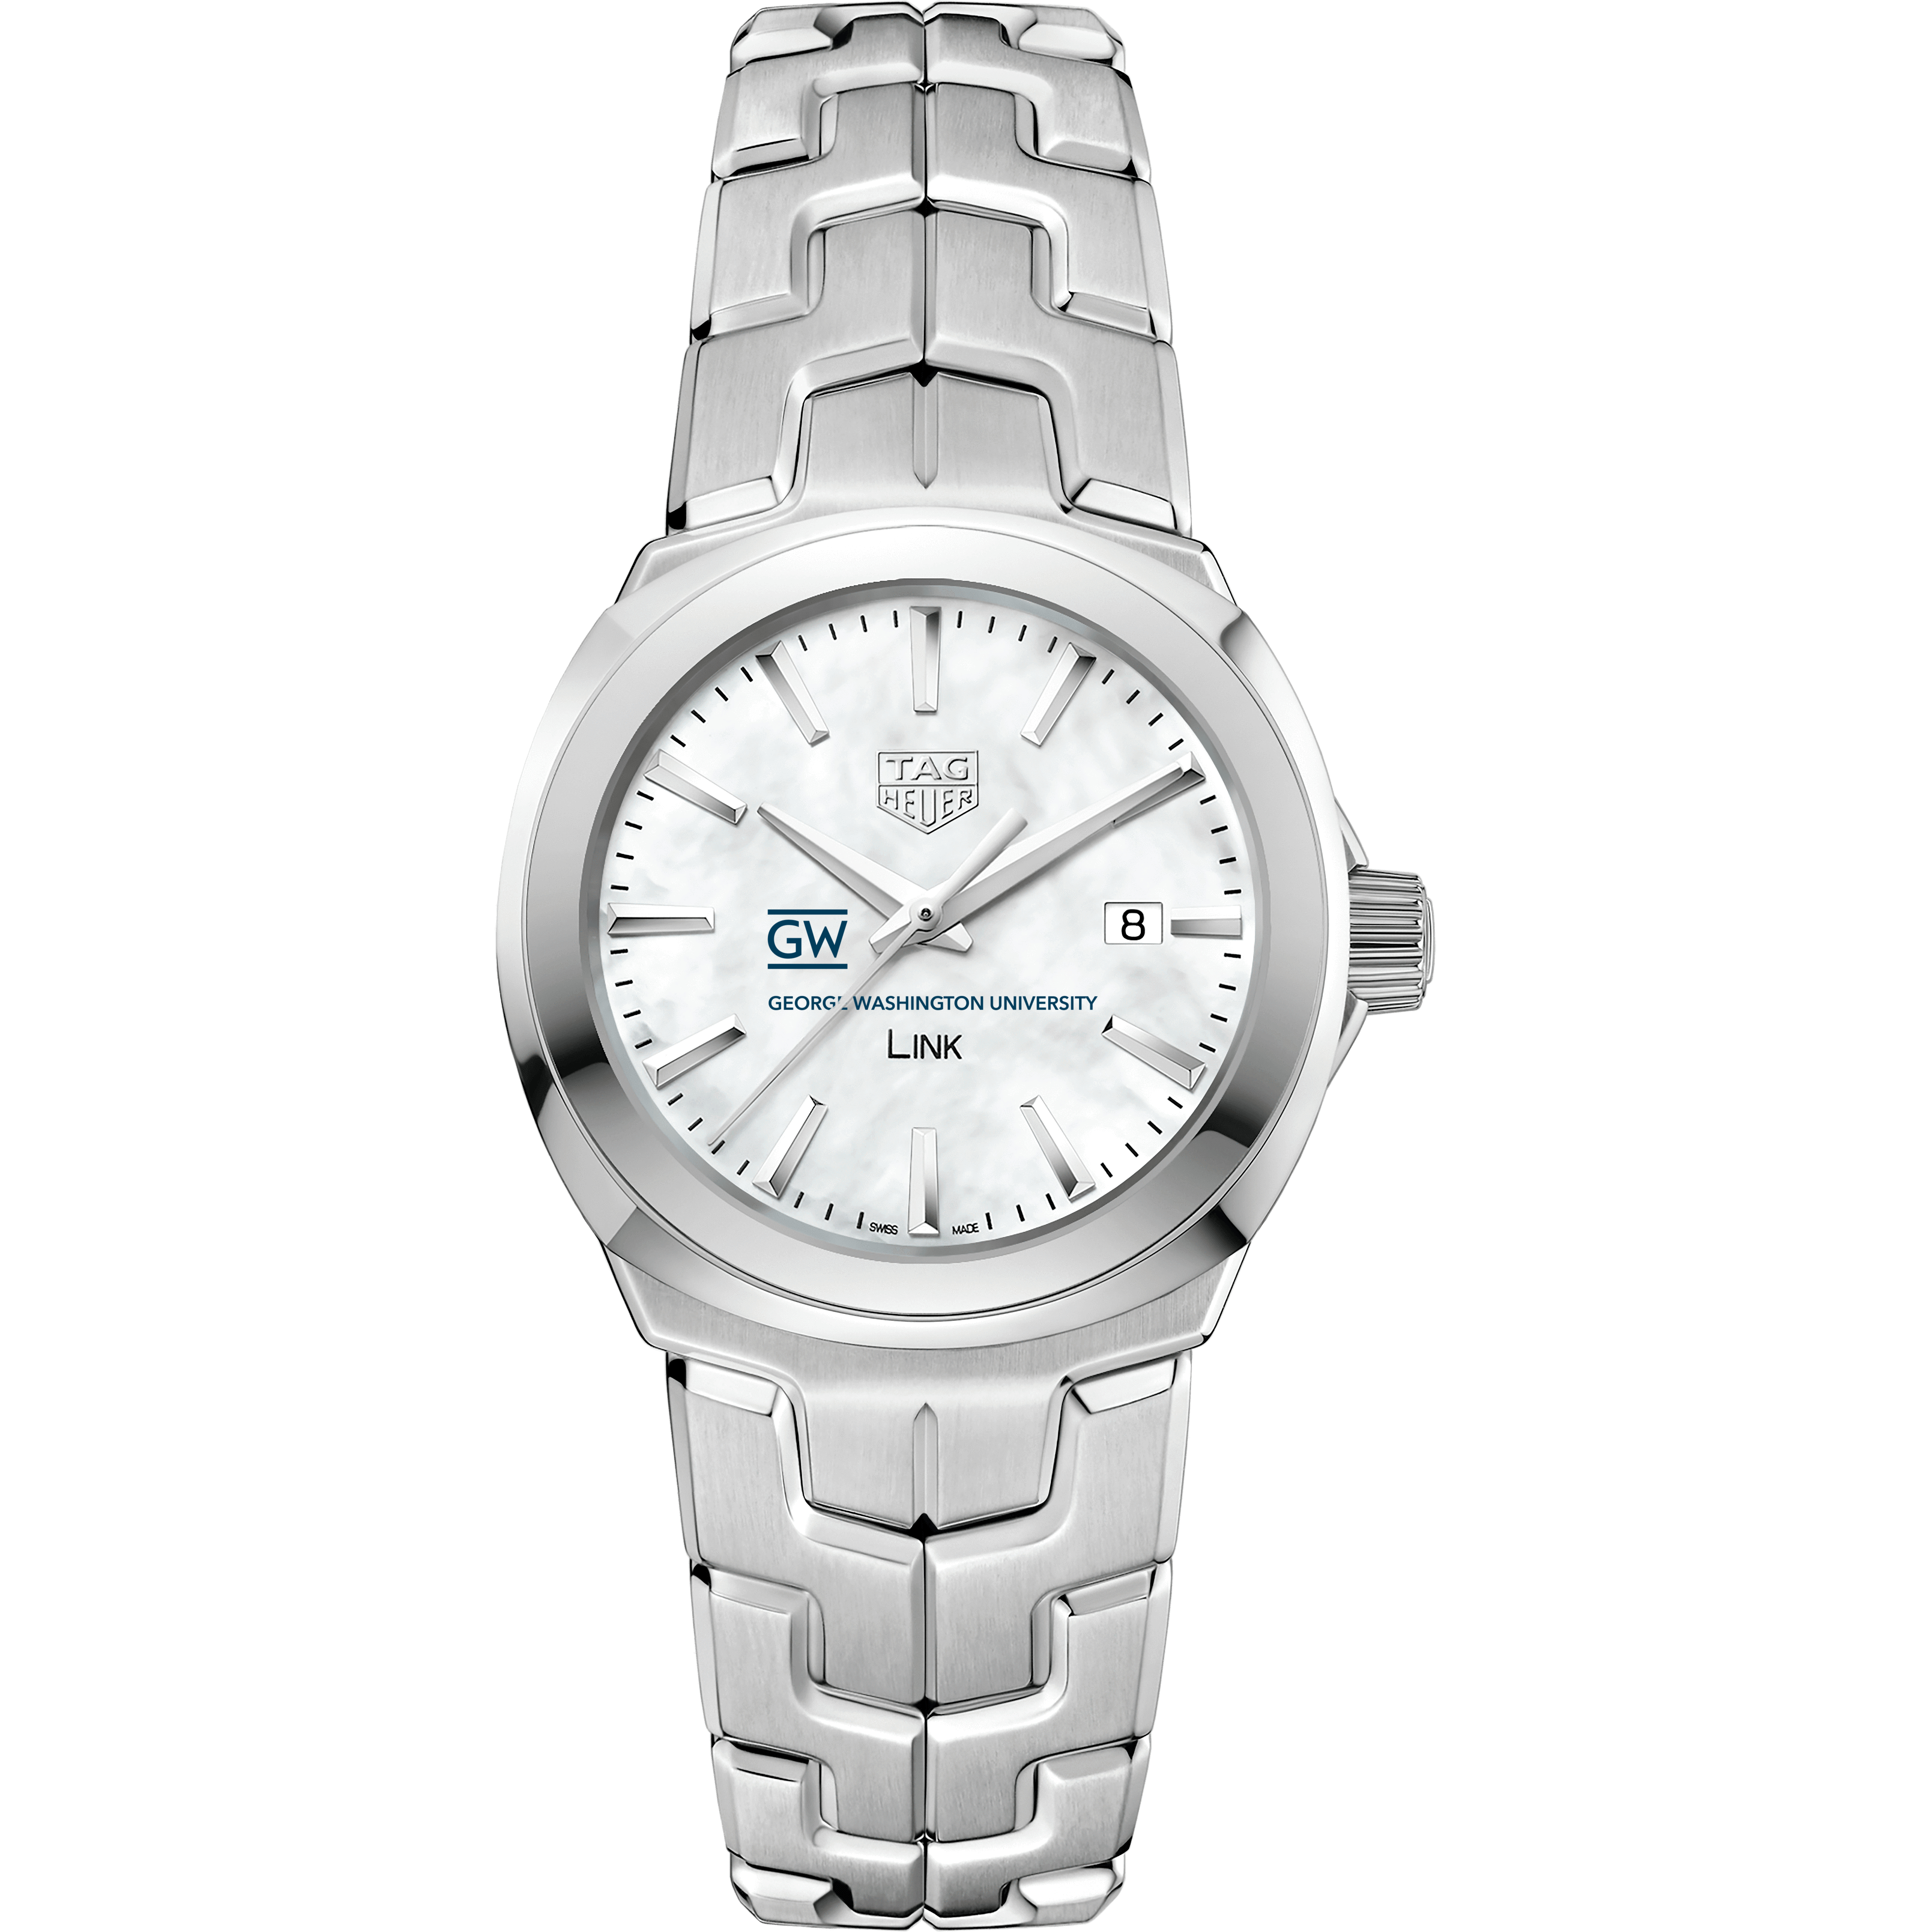 George Washington University TAG Heuer LINK for Women - Image 2